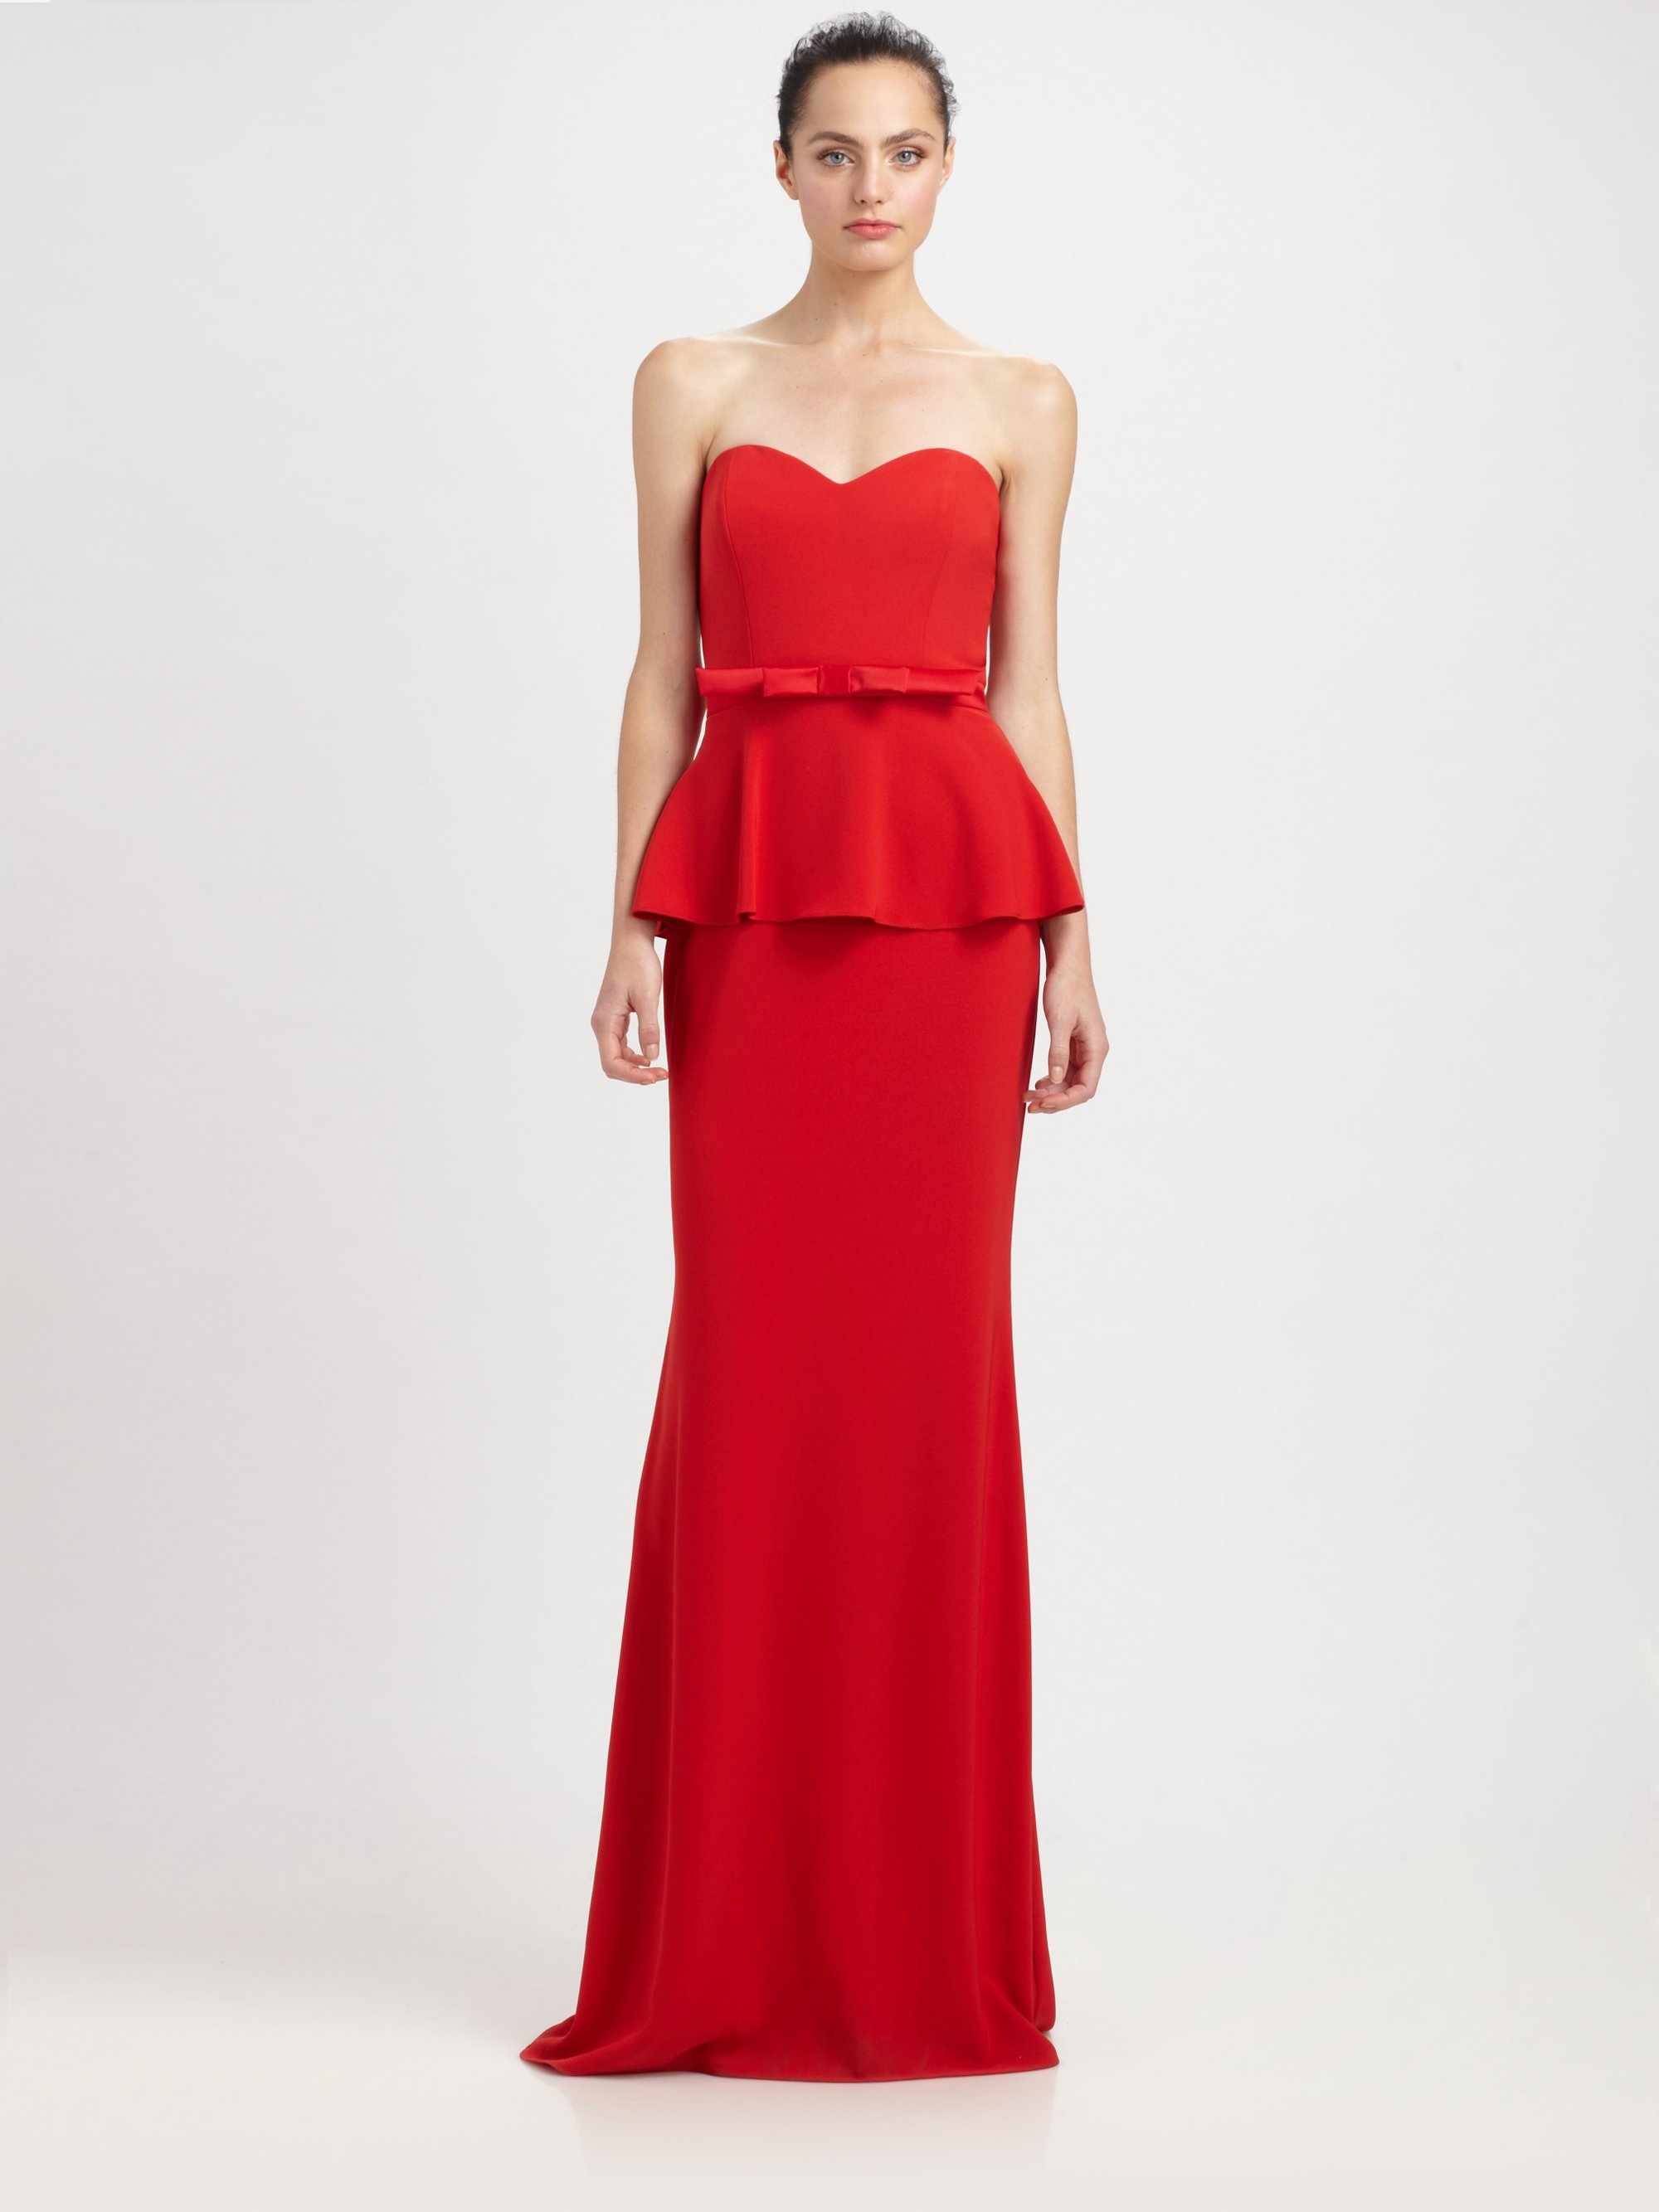 Colorful Badgley Mischka Rosalind Peplum Gown Gallery - Wedding and ...